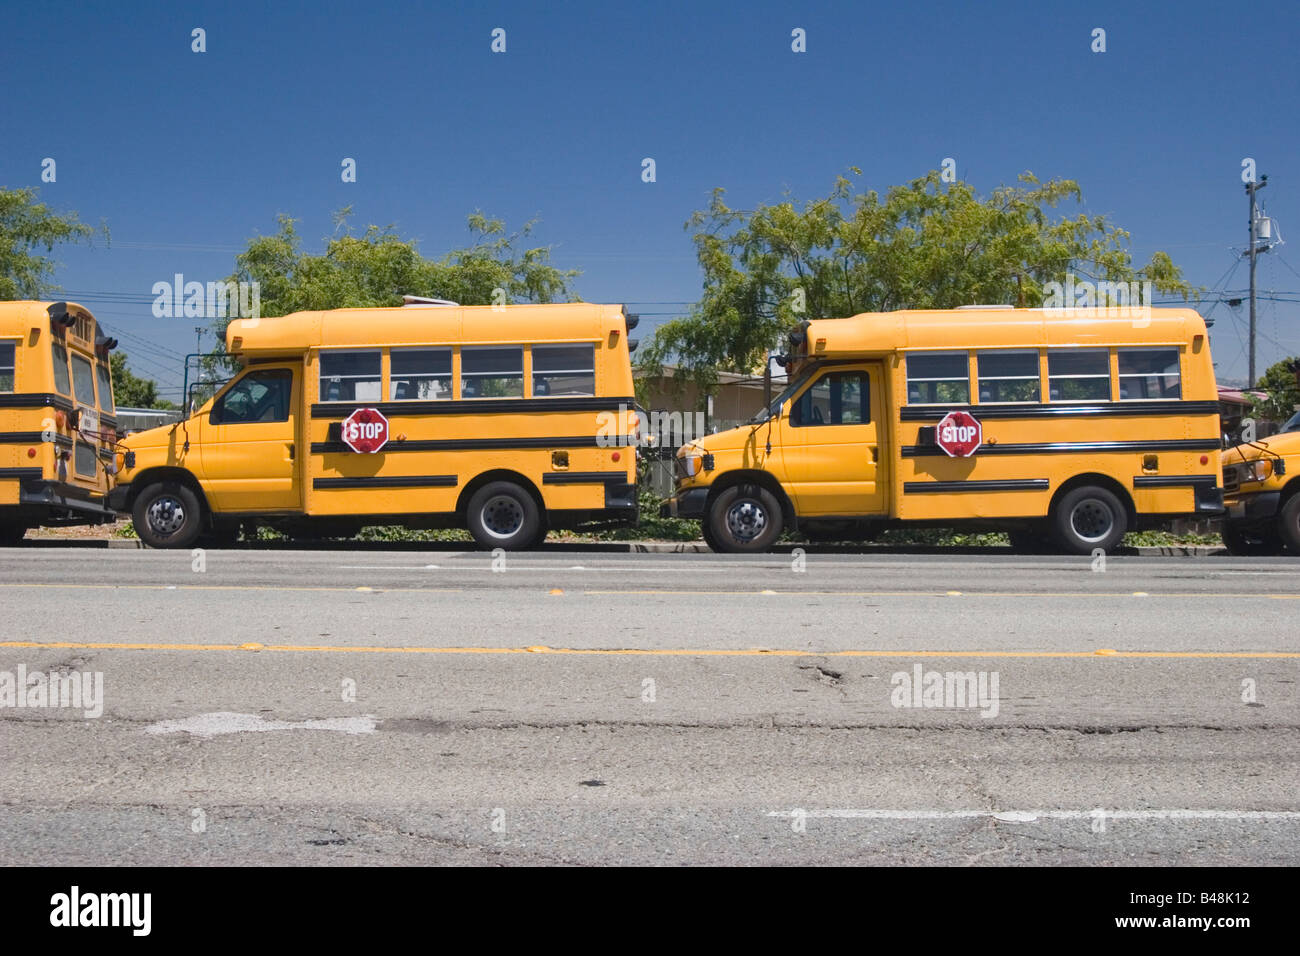 Yellow school buses parked on the street - Stock Image